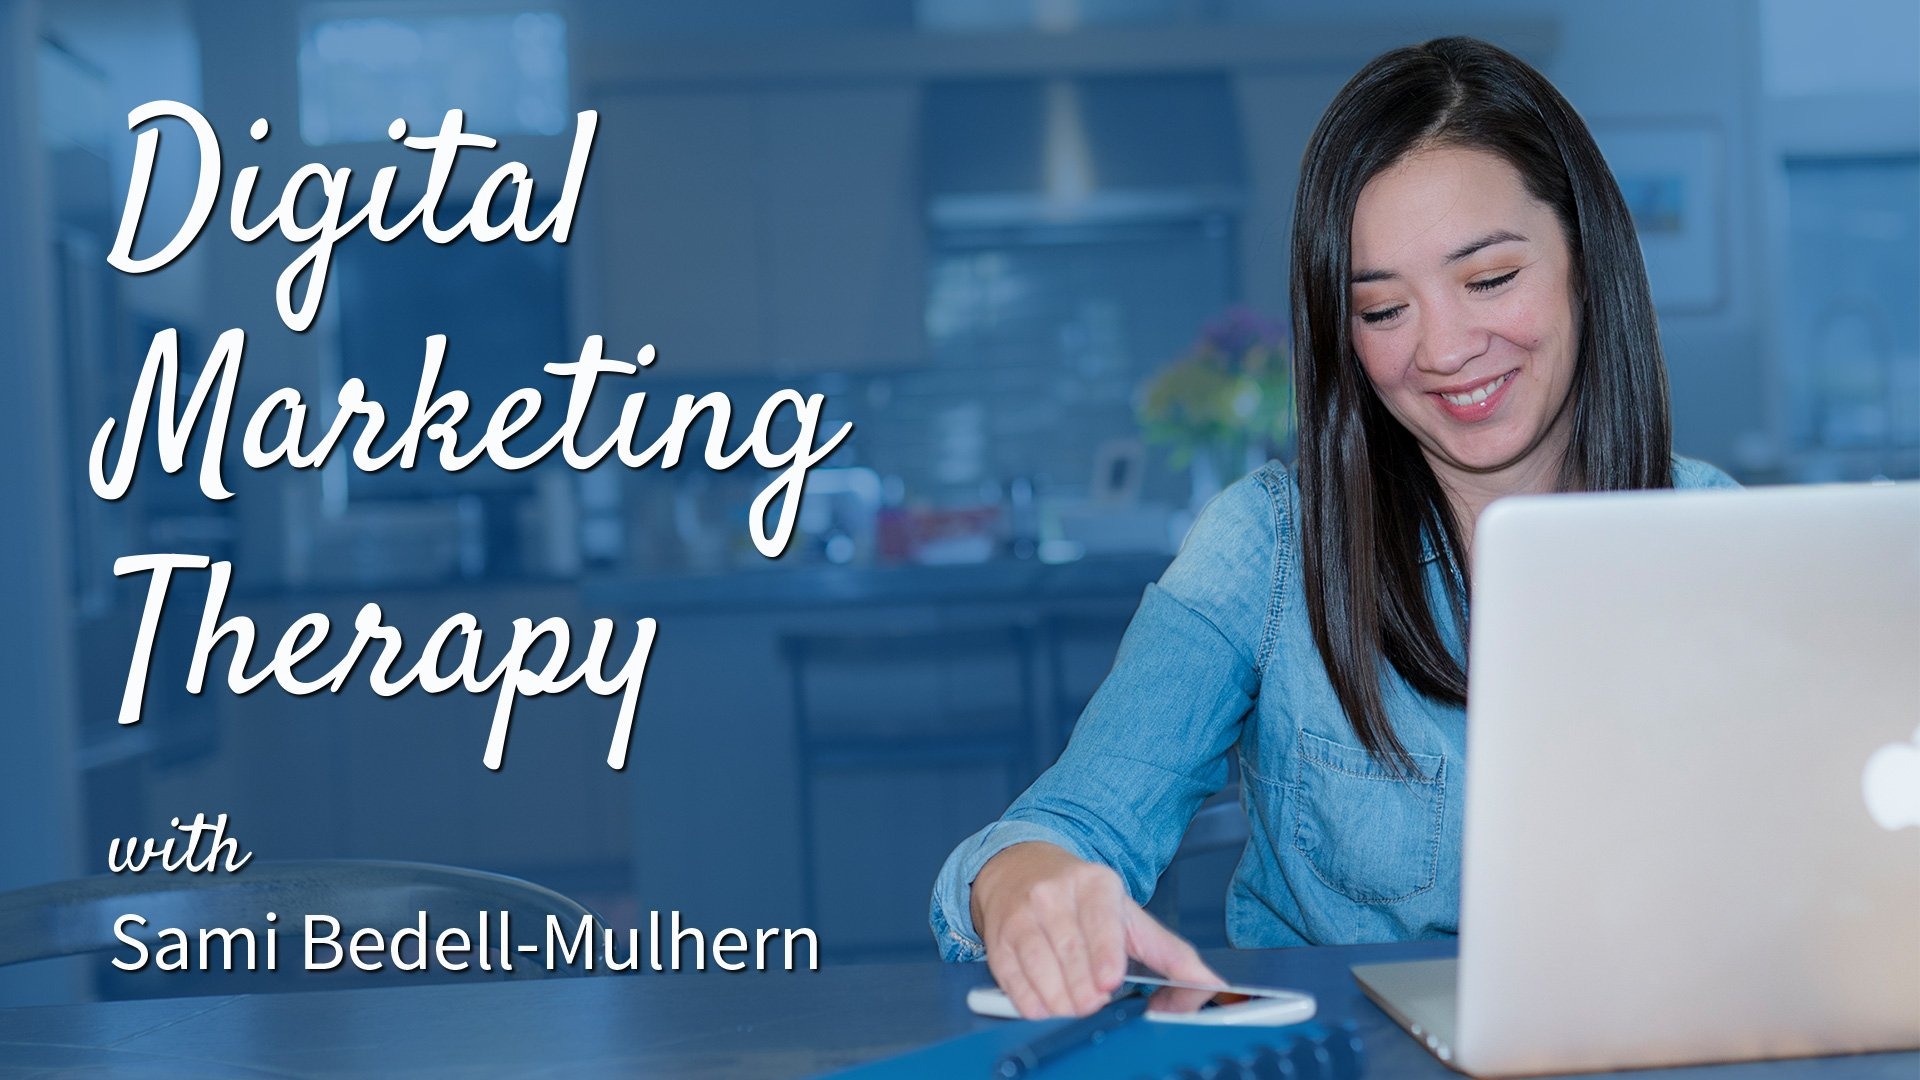 Digital Marketing Therapy podcast